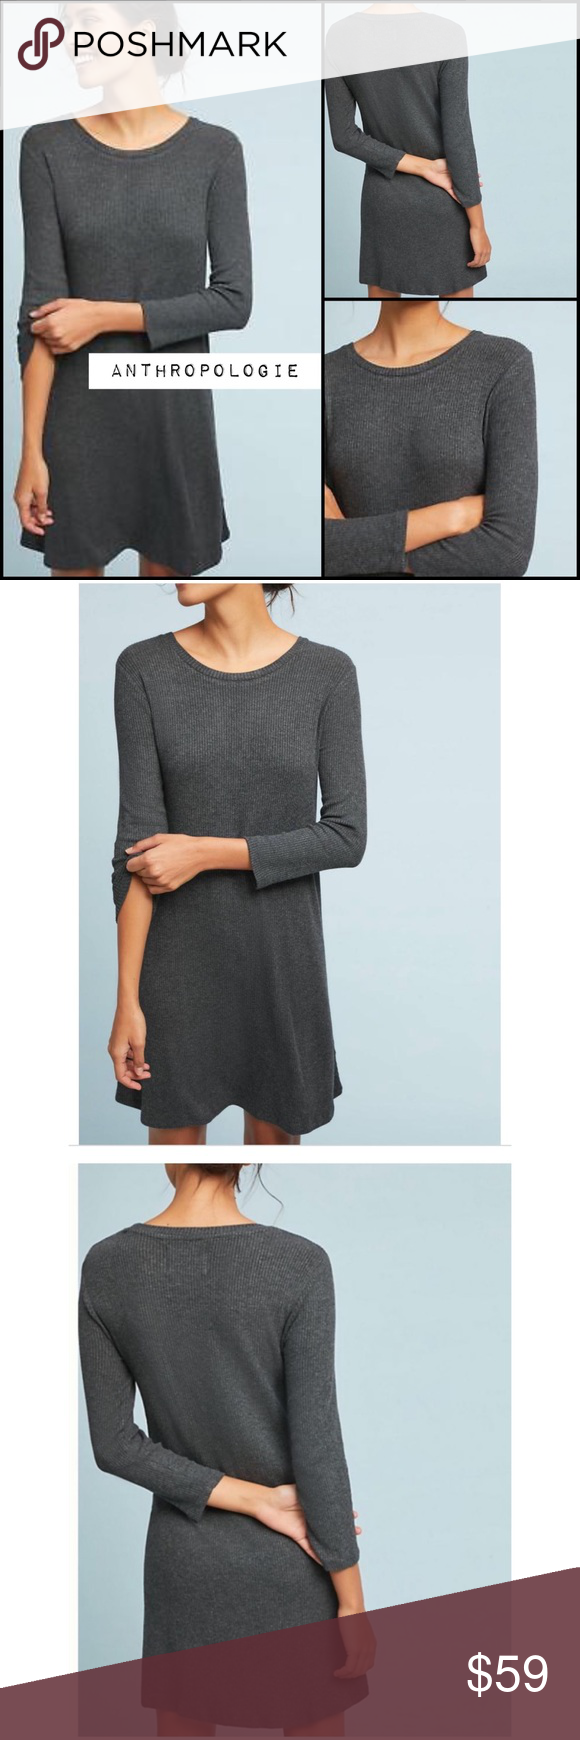 47a02b5651c5 Anthropologie Chrissy Tunic Dress NWT Gray XL NEW BNWT brand new with tags  Women's size XL Cream off white motif Viscose, elastane Pullover styling  Dry ...